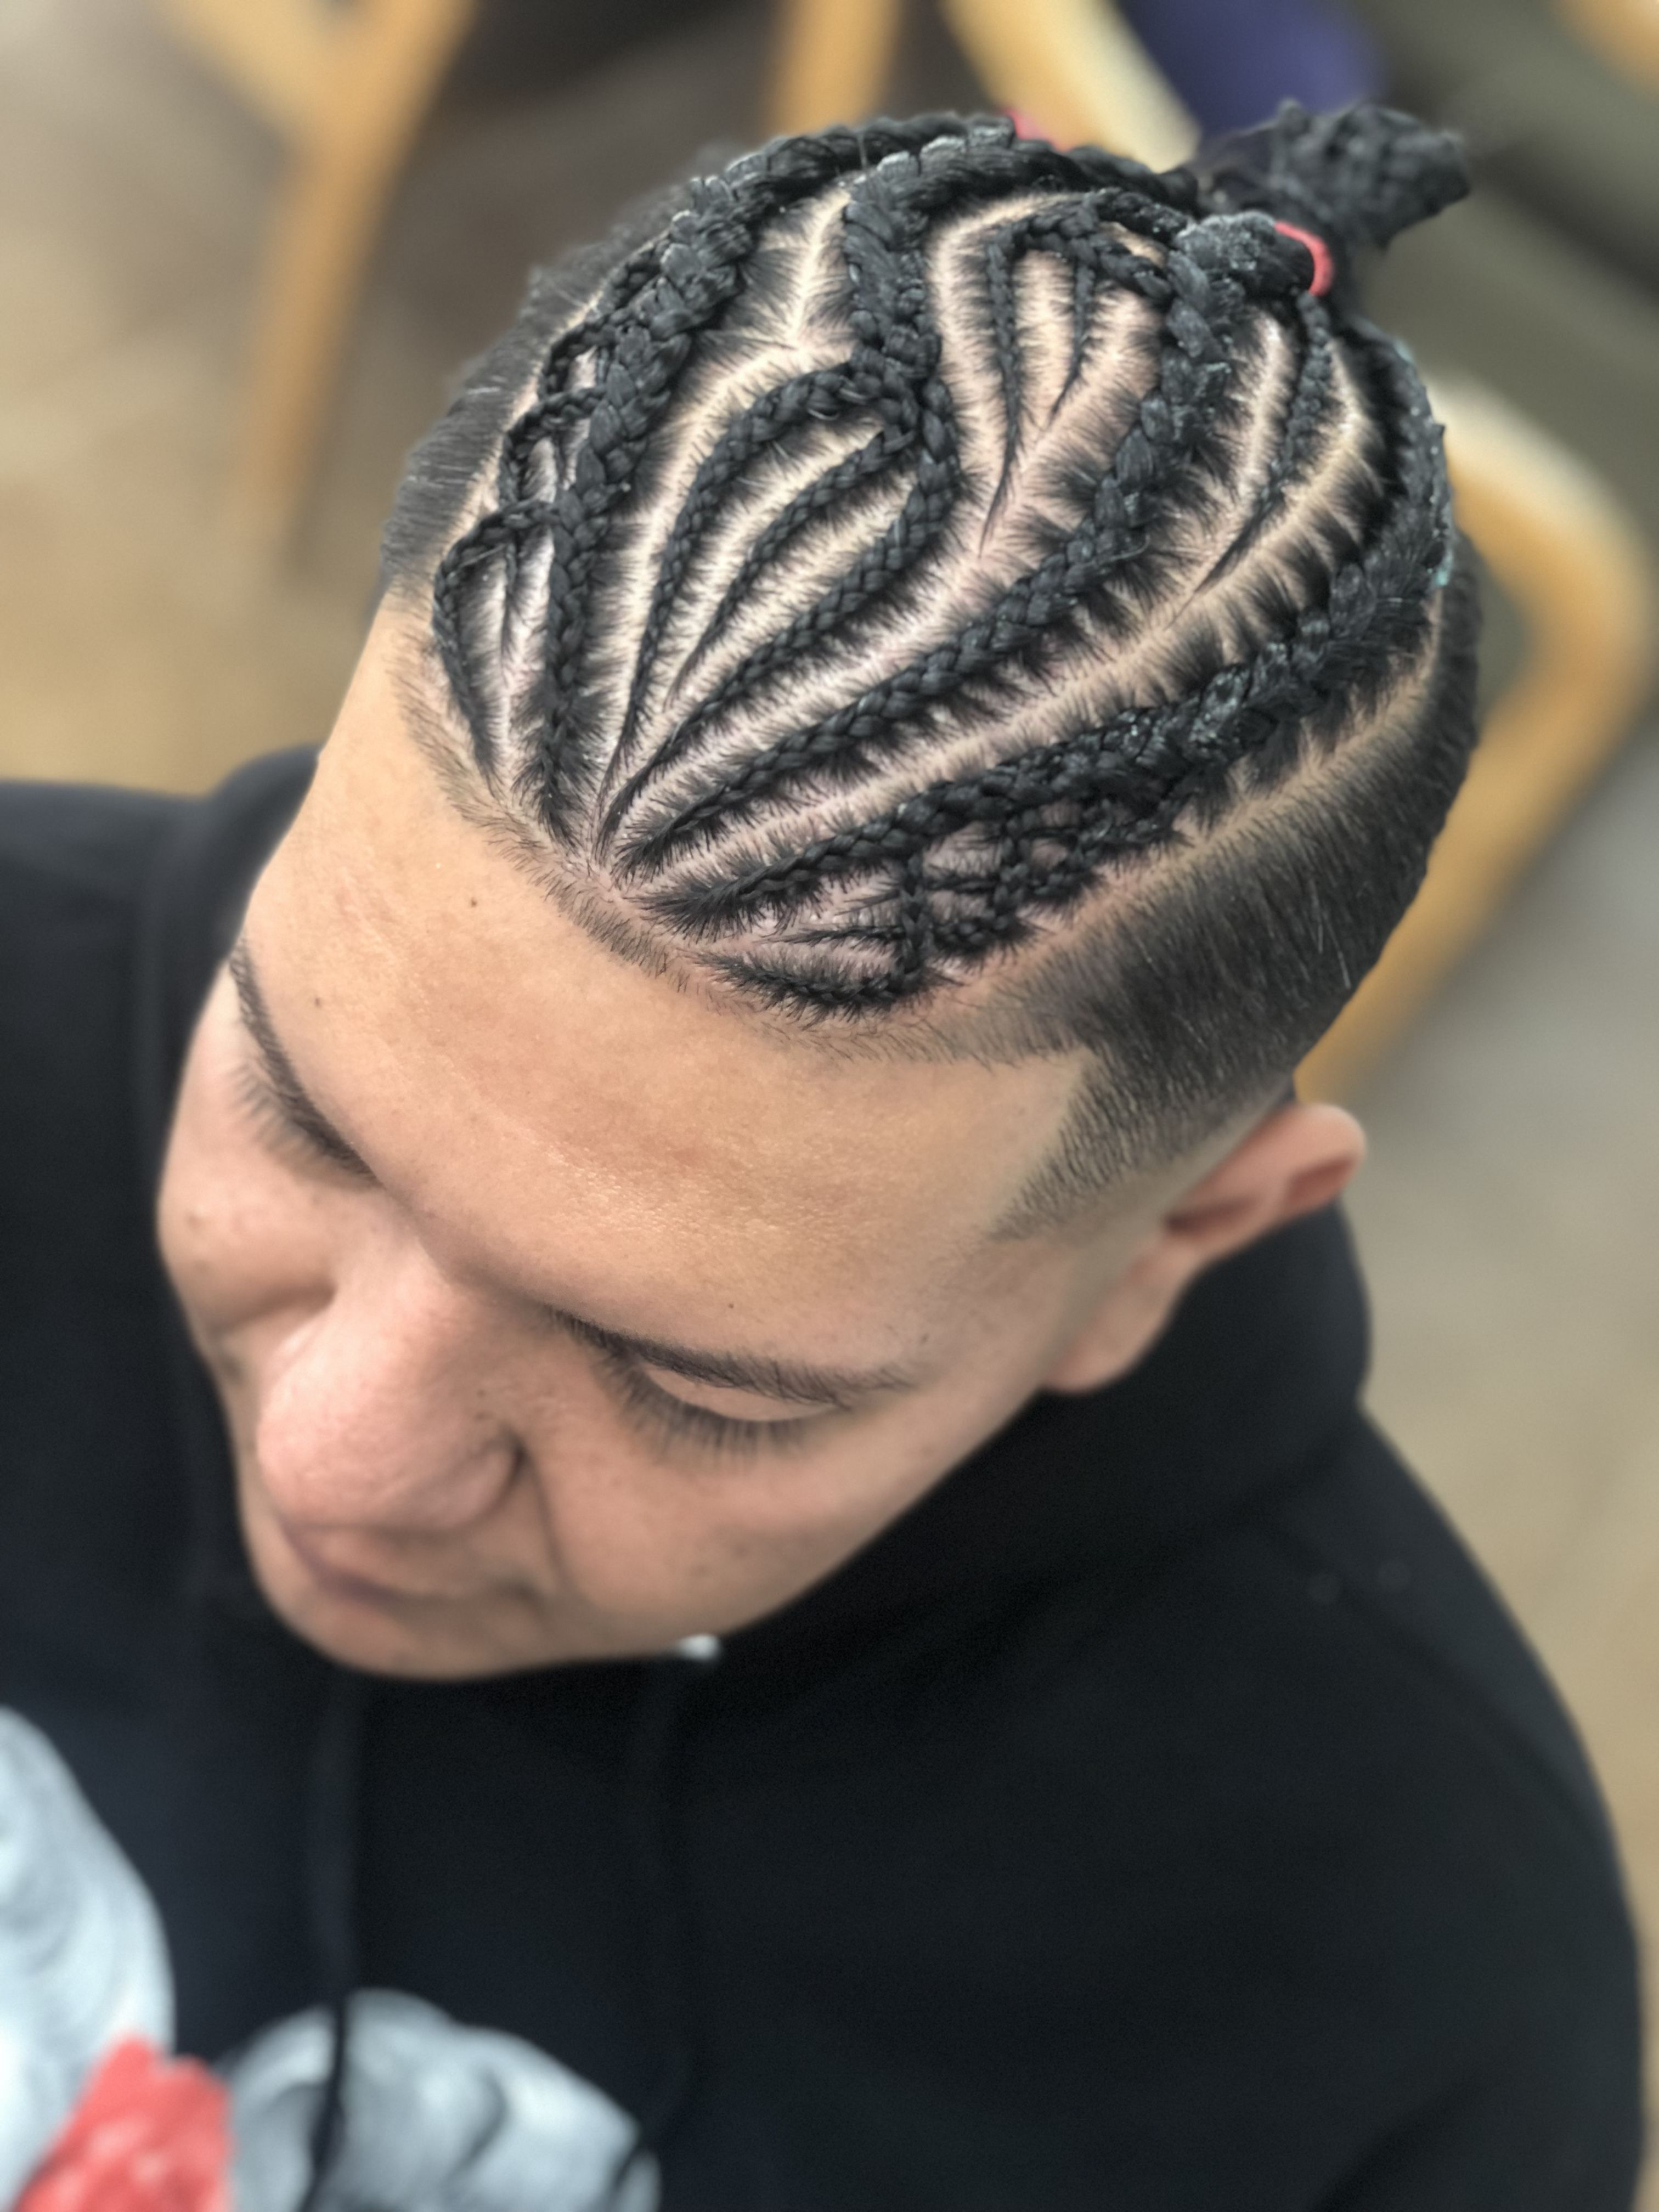 Pin by Just Braids on Stylish braids for Men in 2019